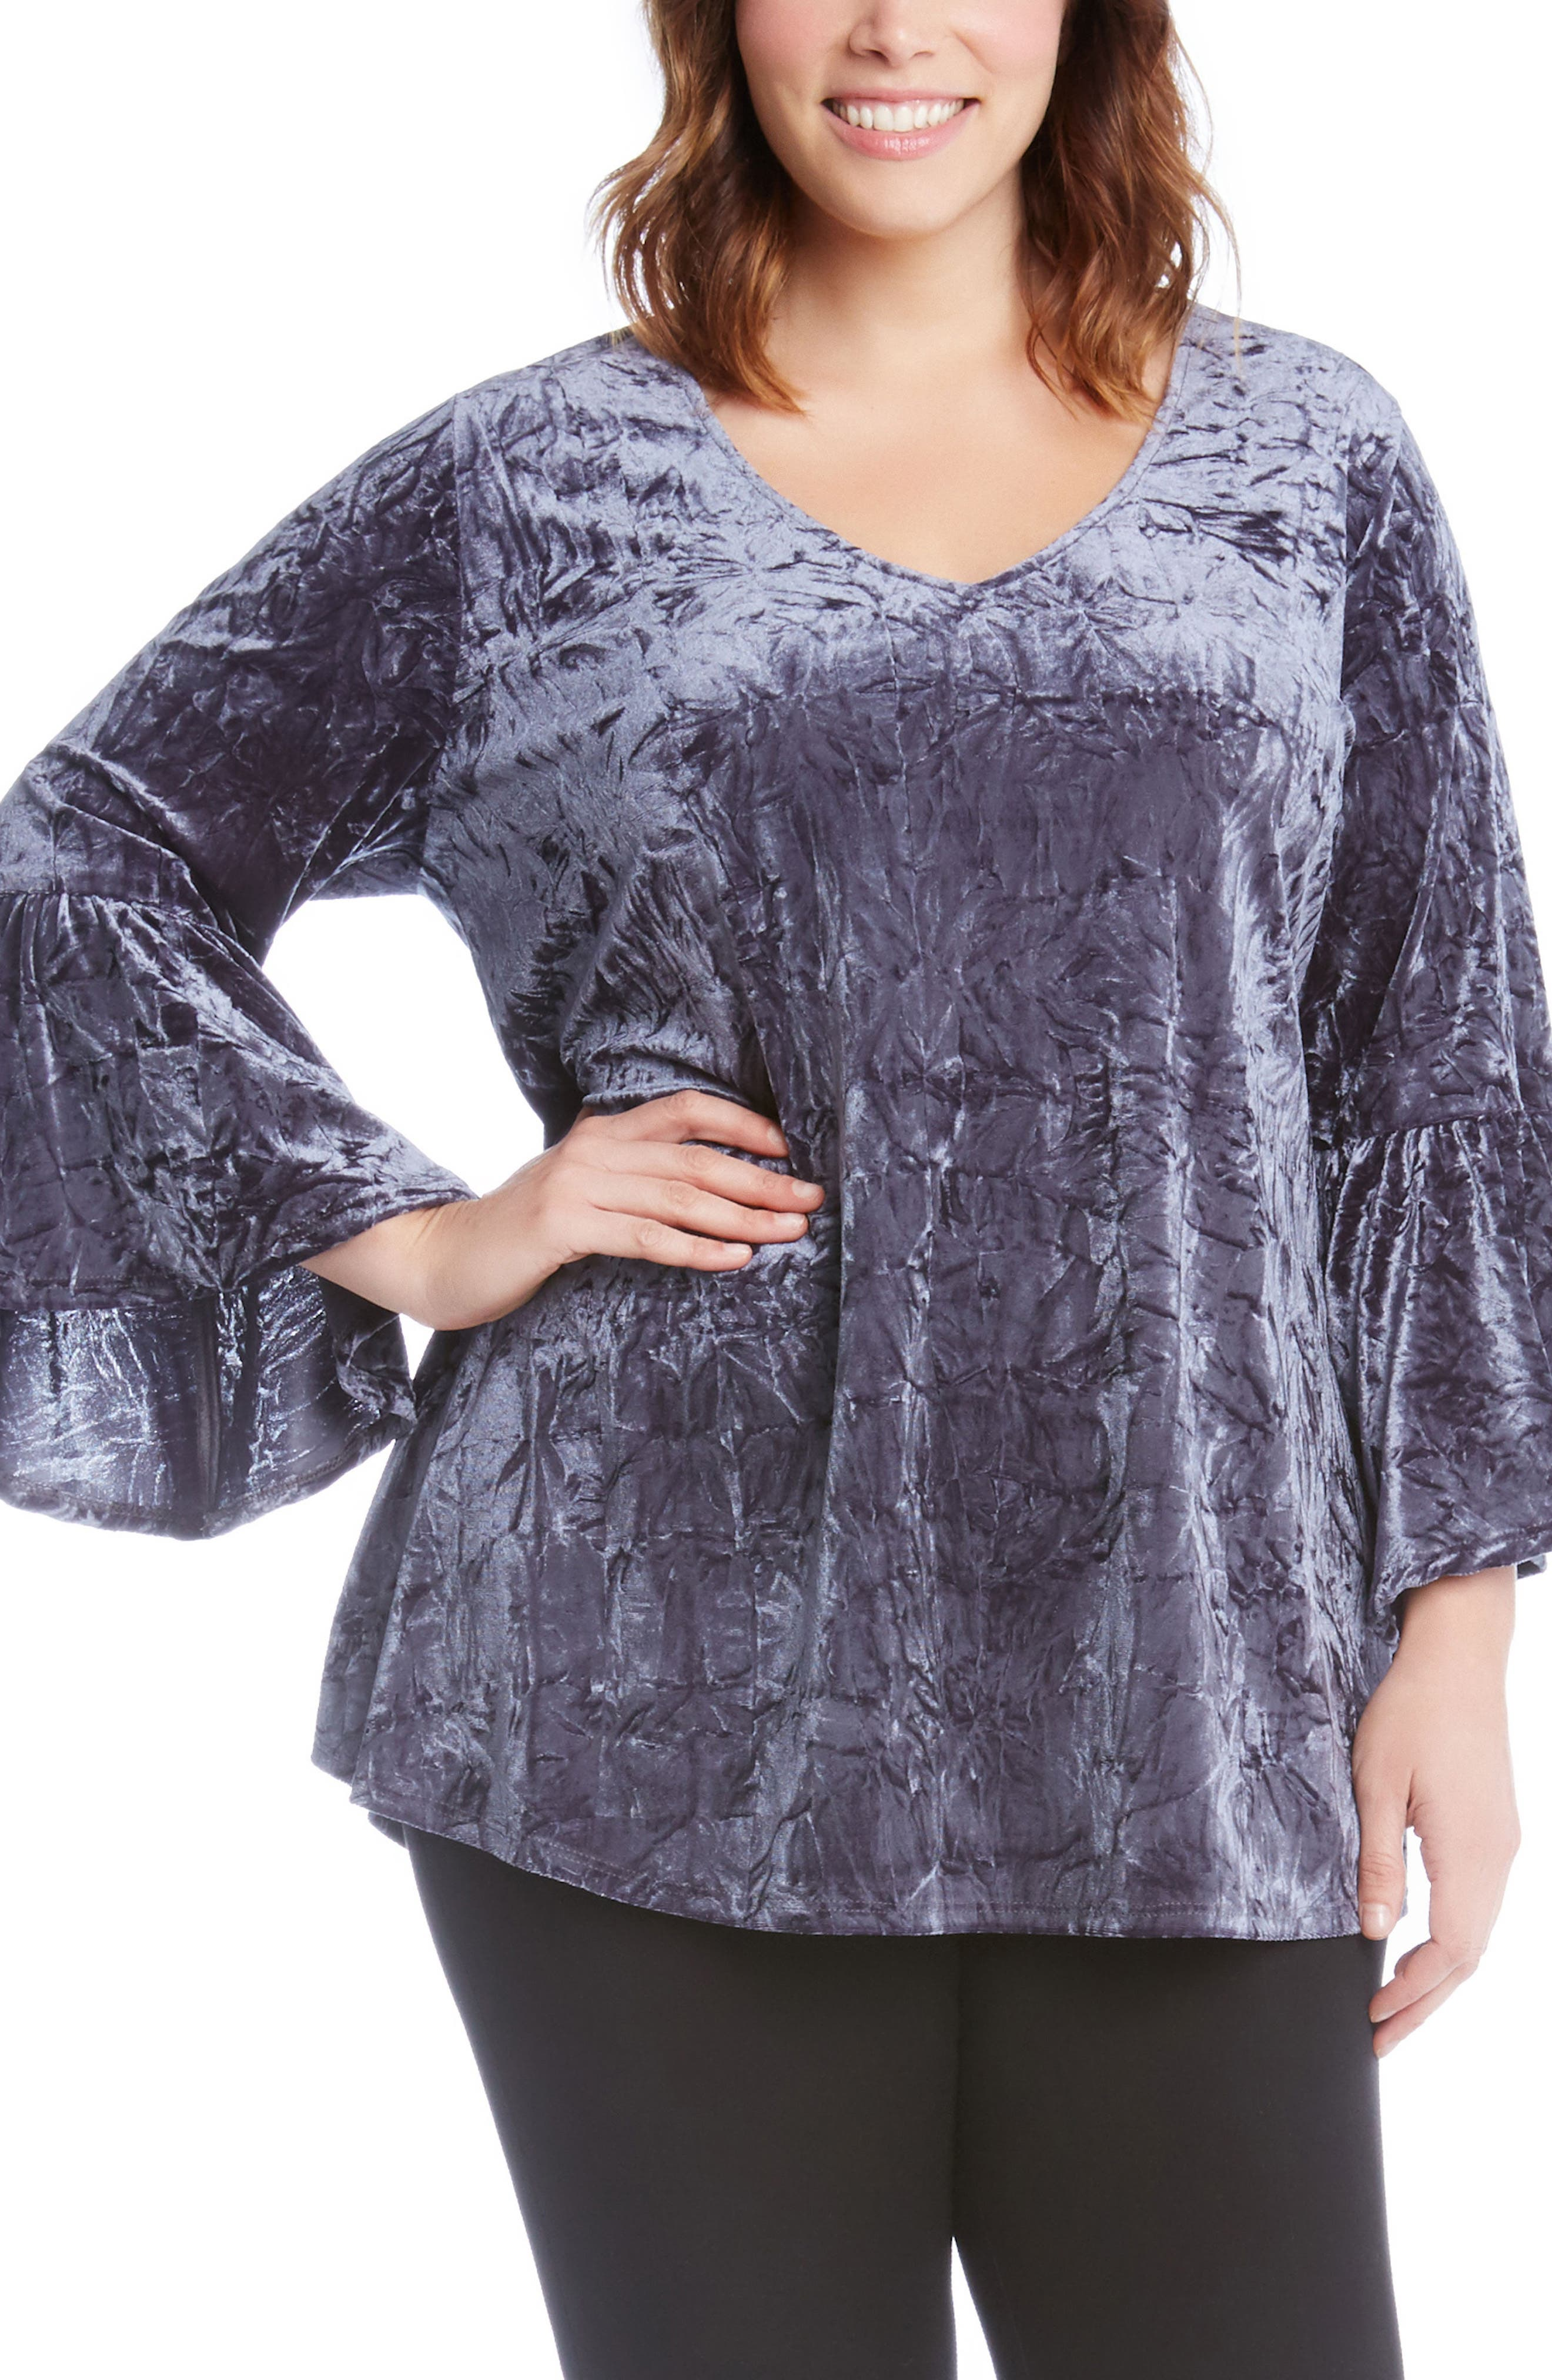 Bell Sleeve Crushed Velvet Top,                             Main thumbnail 1, color,                             Gray